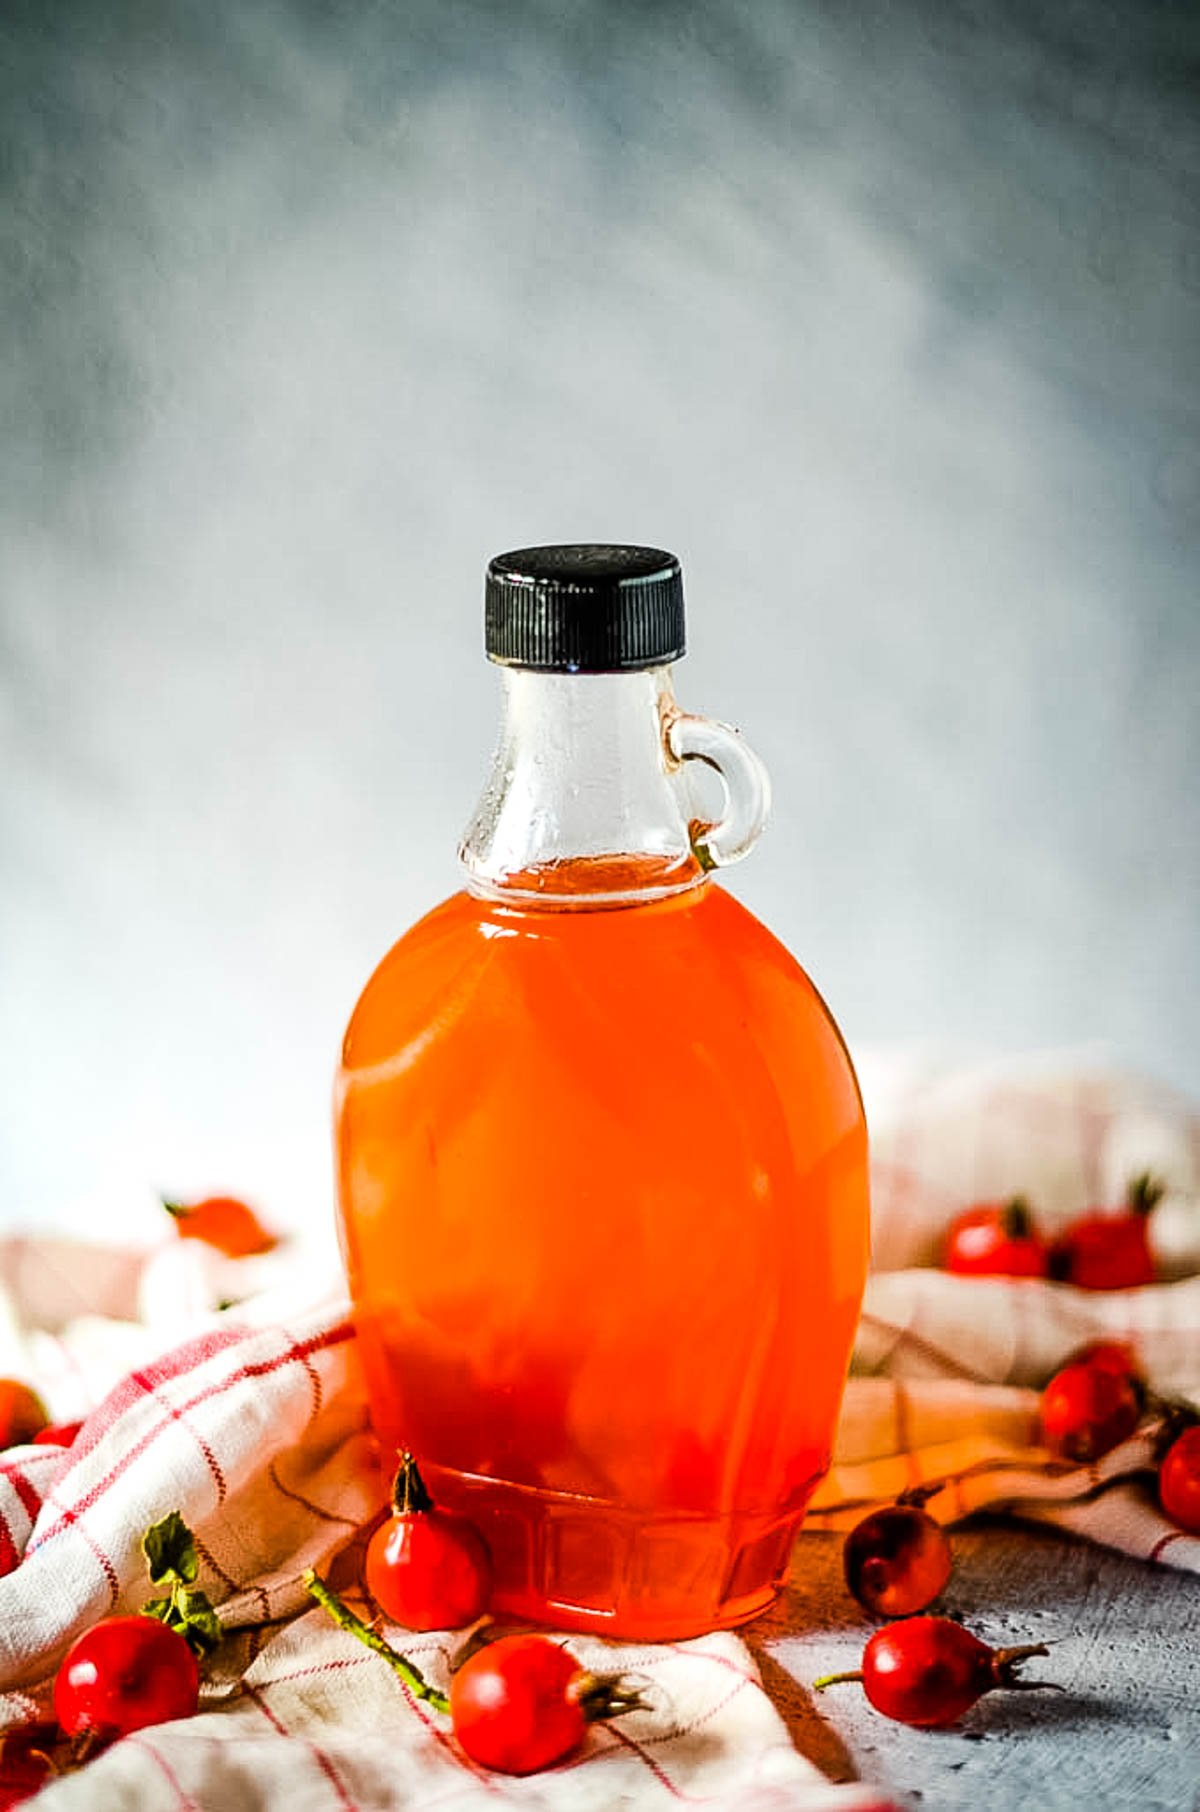 rosehip syrup in bottle